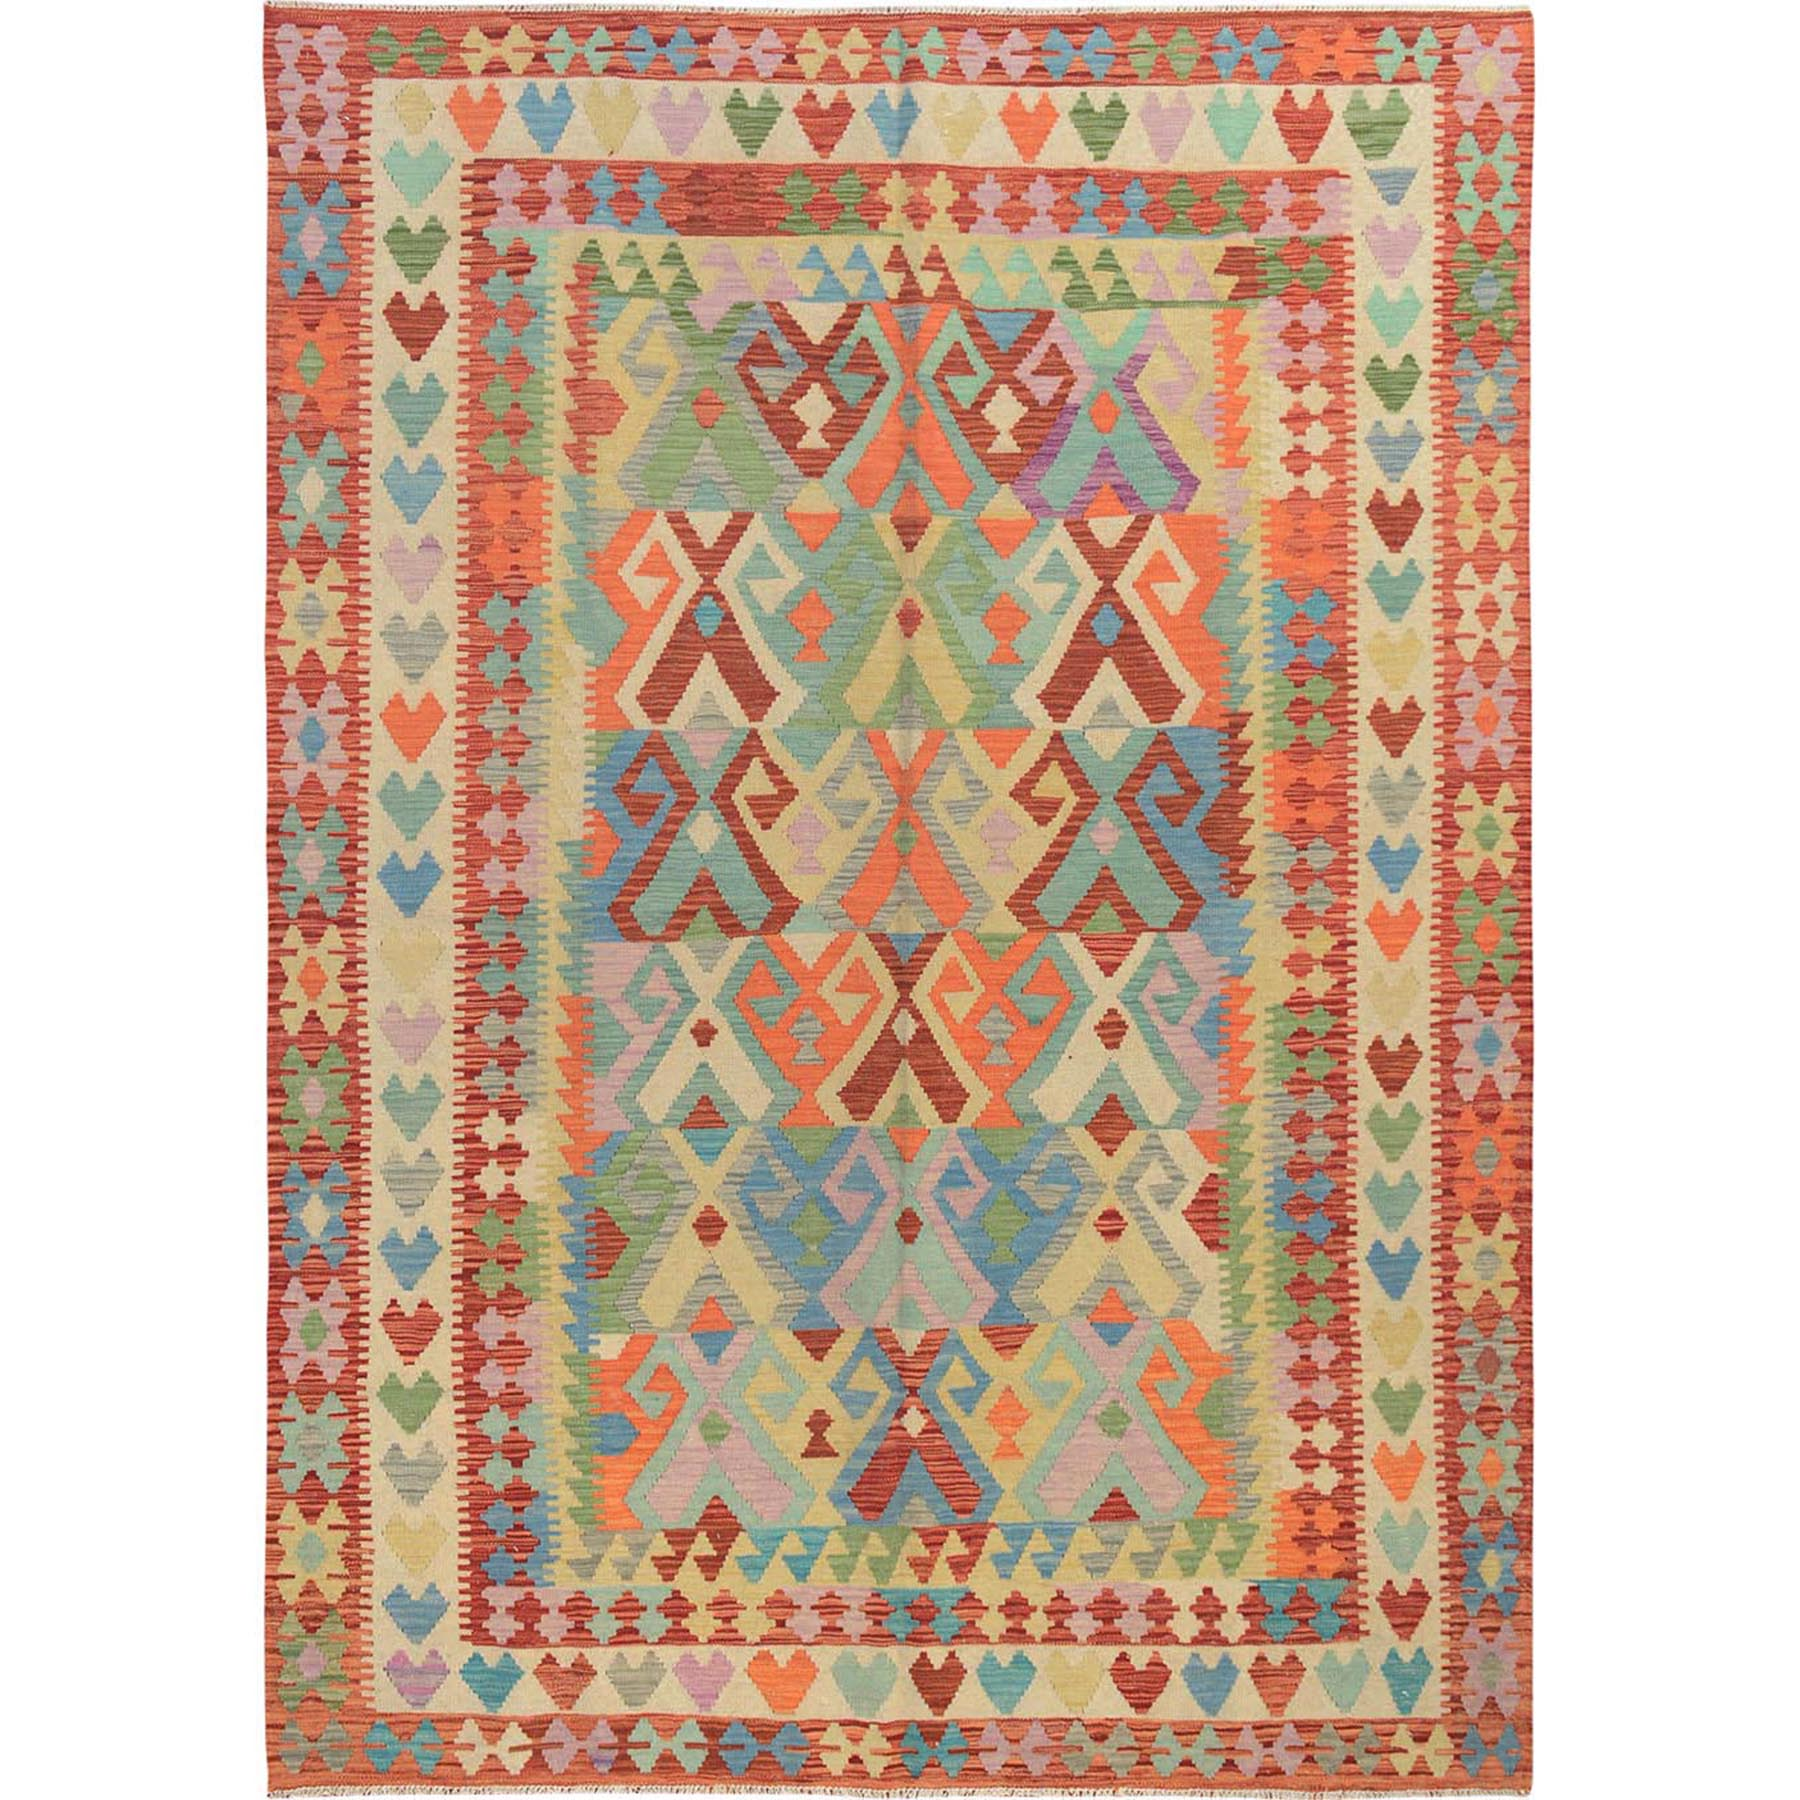 "6'8""x9'7"" Colorful Reversible Afghan Kilim Vegetable Dyes Pure Wool Hand Woven Oriental Rug"